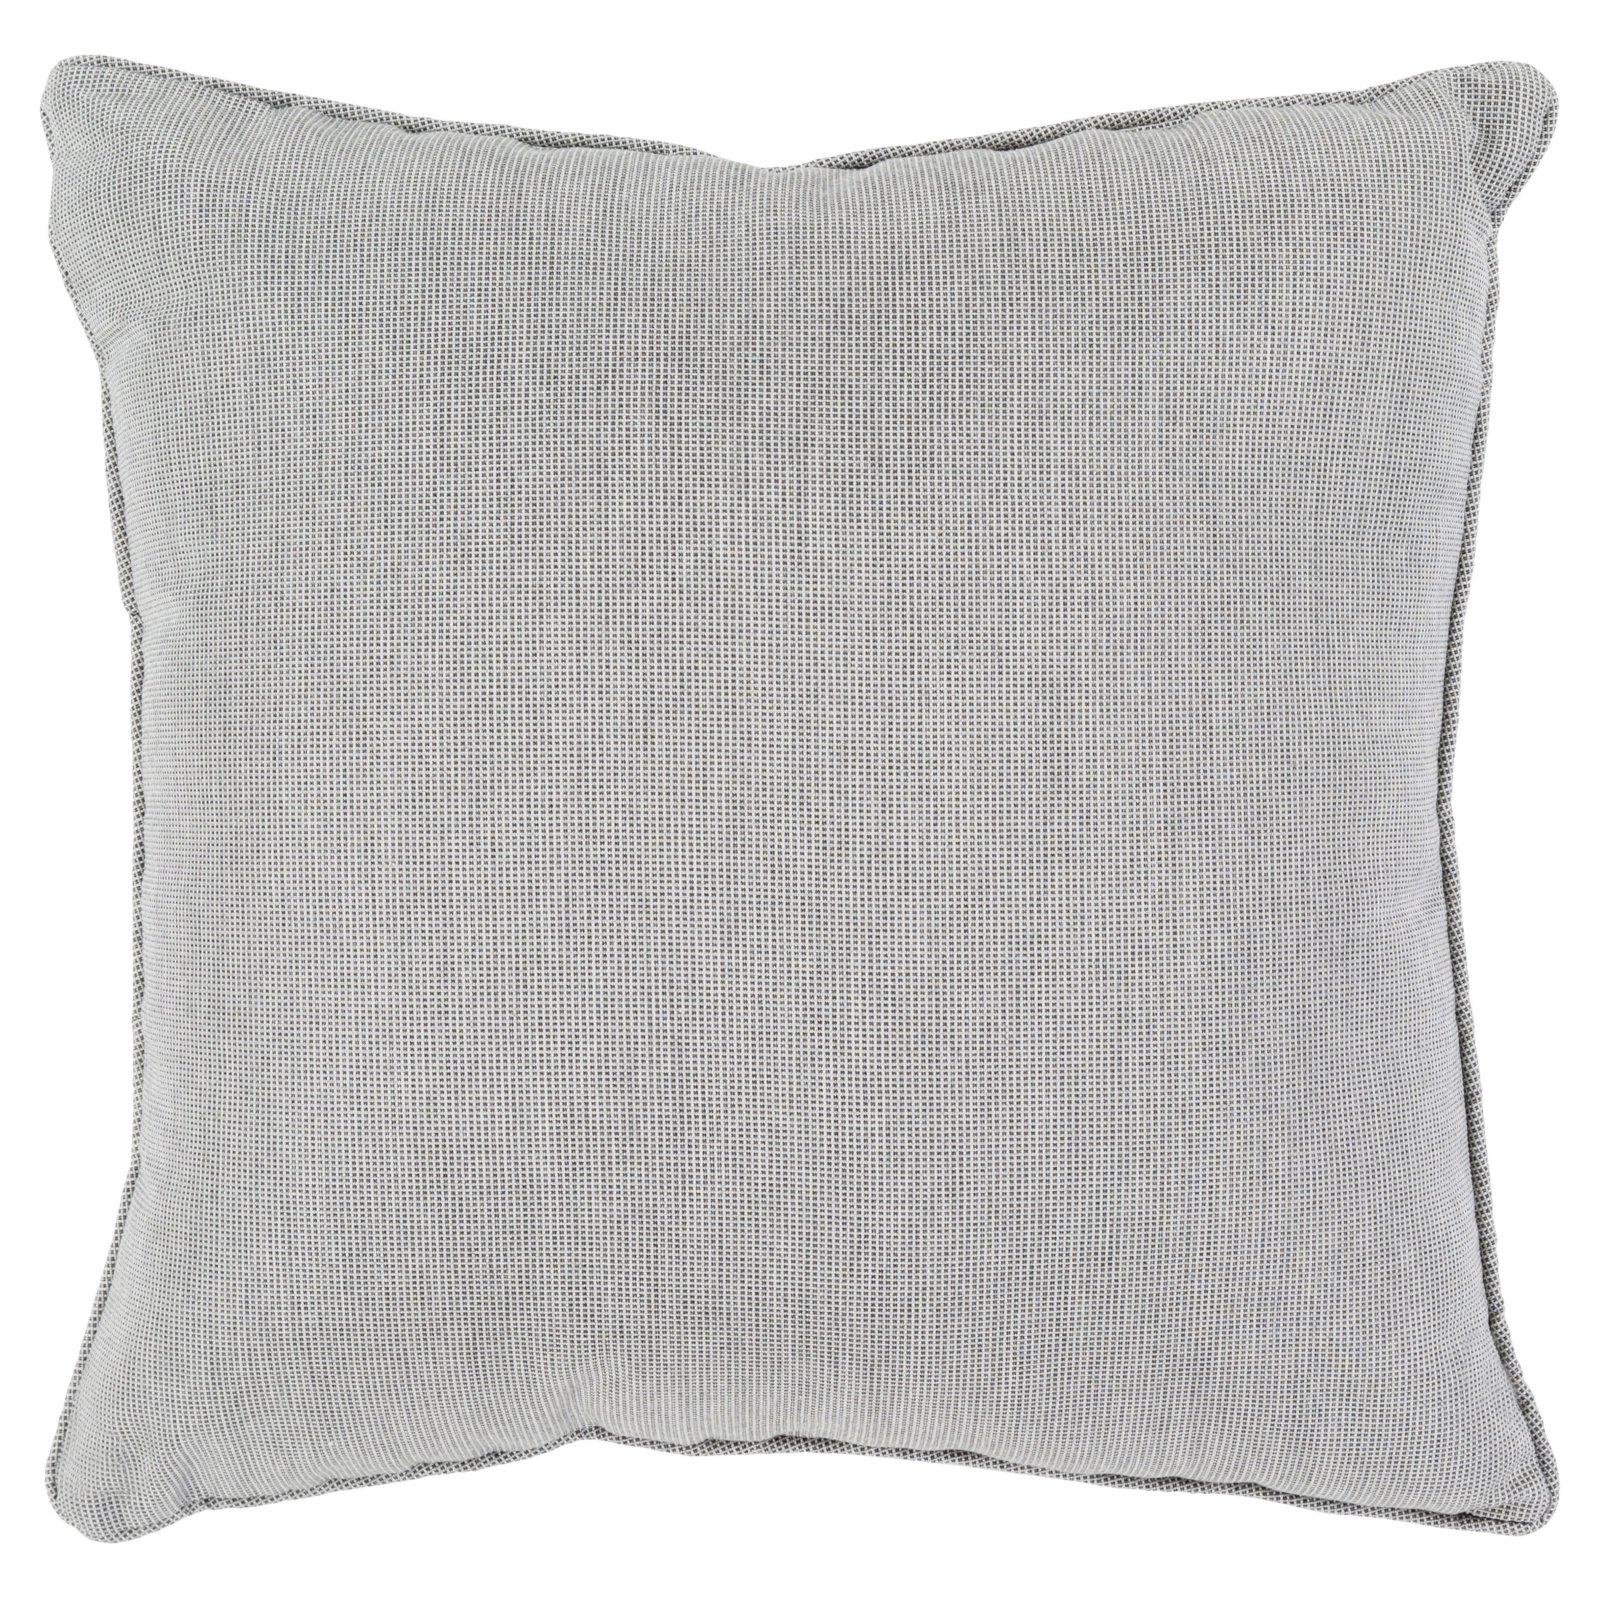 Surya Piper Indoor/Outdoor Pillow